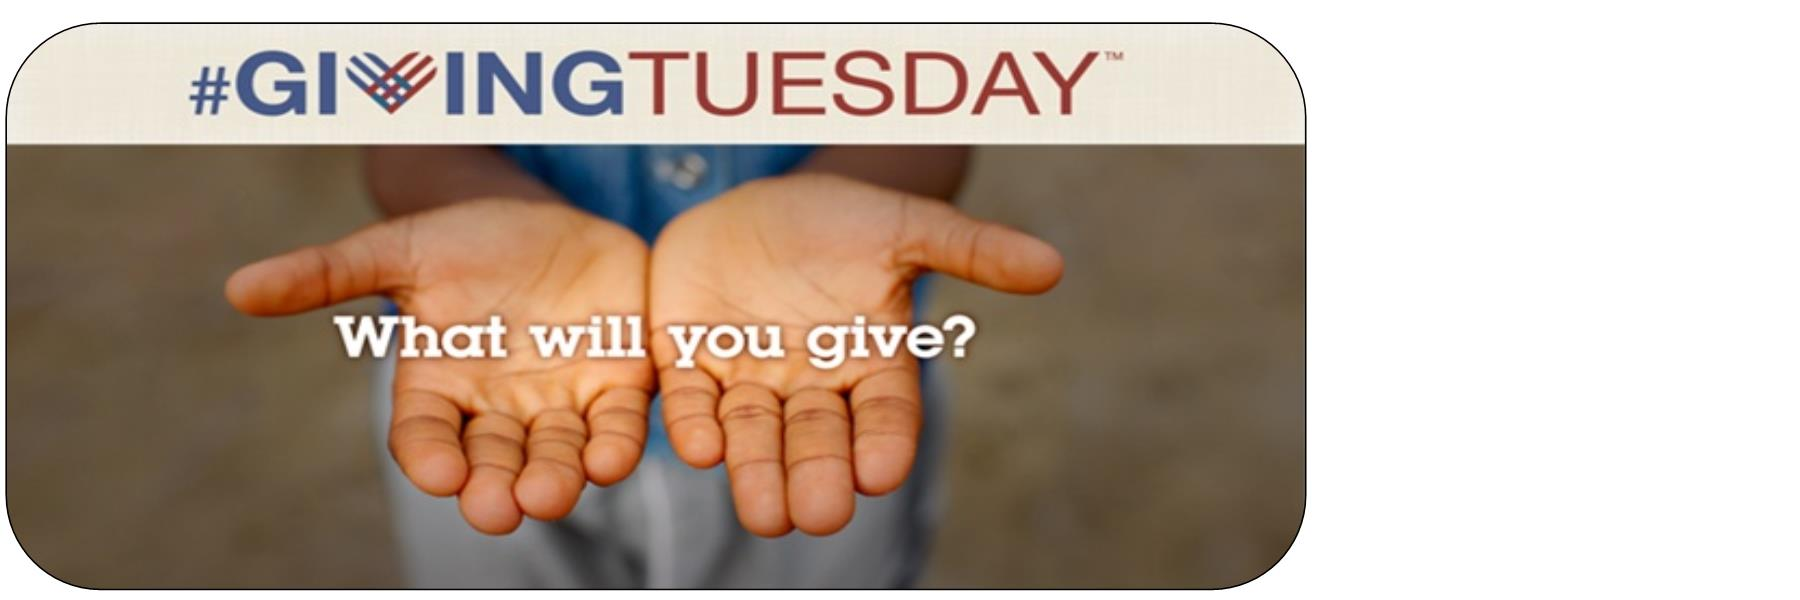 Tuesday December 1 is Giving Tuesday and your contribution to SAAF will be matched, dollar-for-dollar!